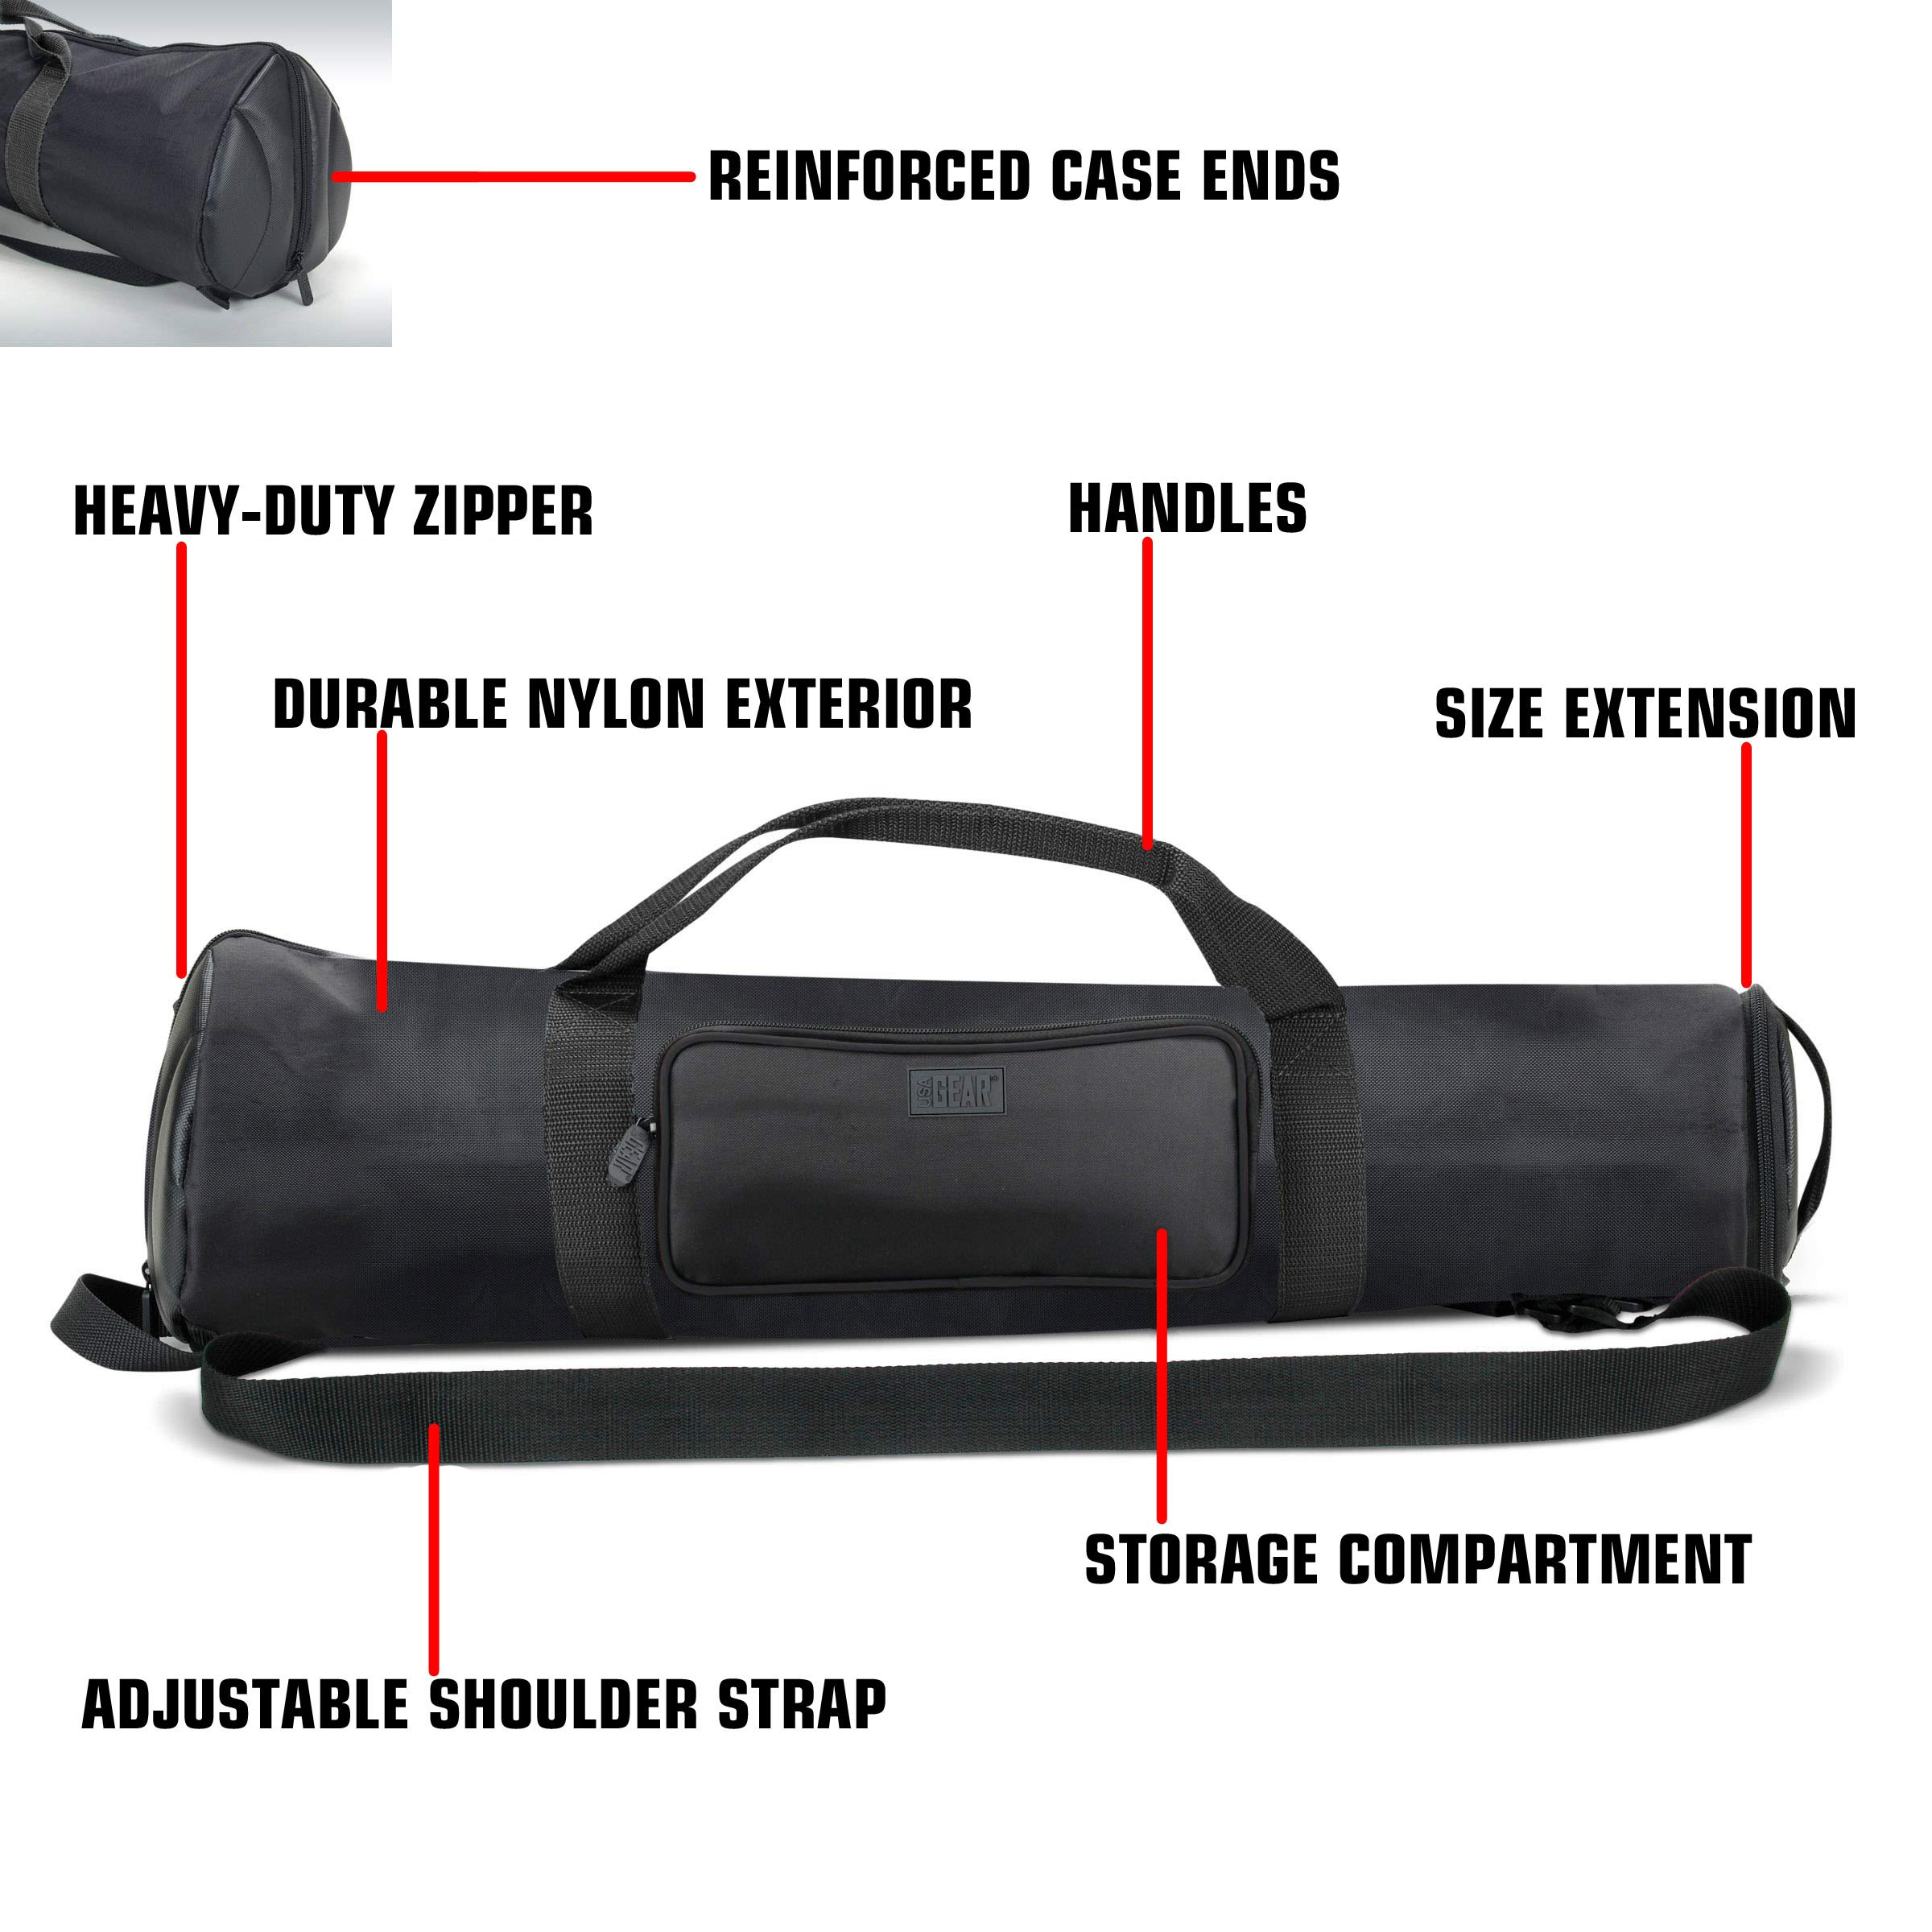 USA Gear Padded Tripod Case Bag - Holds Tripods from 21'' to 35'' Folded with Shoulder Strap, Adjustable Size Extension and Storage Pocket for Professional Camera Accessories and Photo Carrying Needs by USA Gear (Image #5)